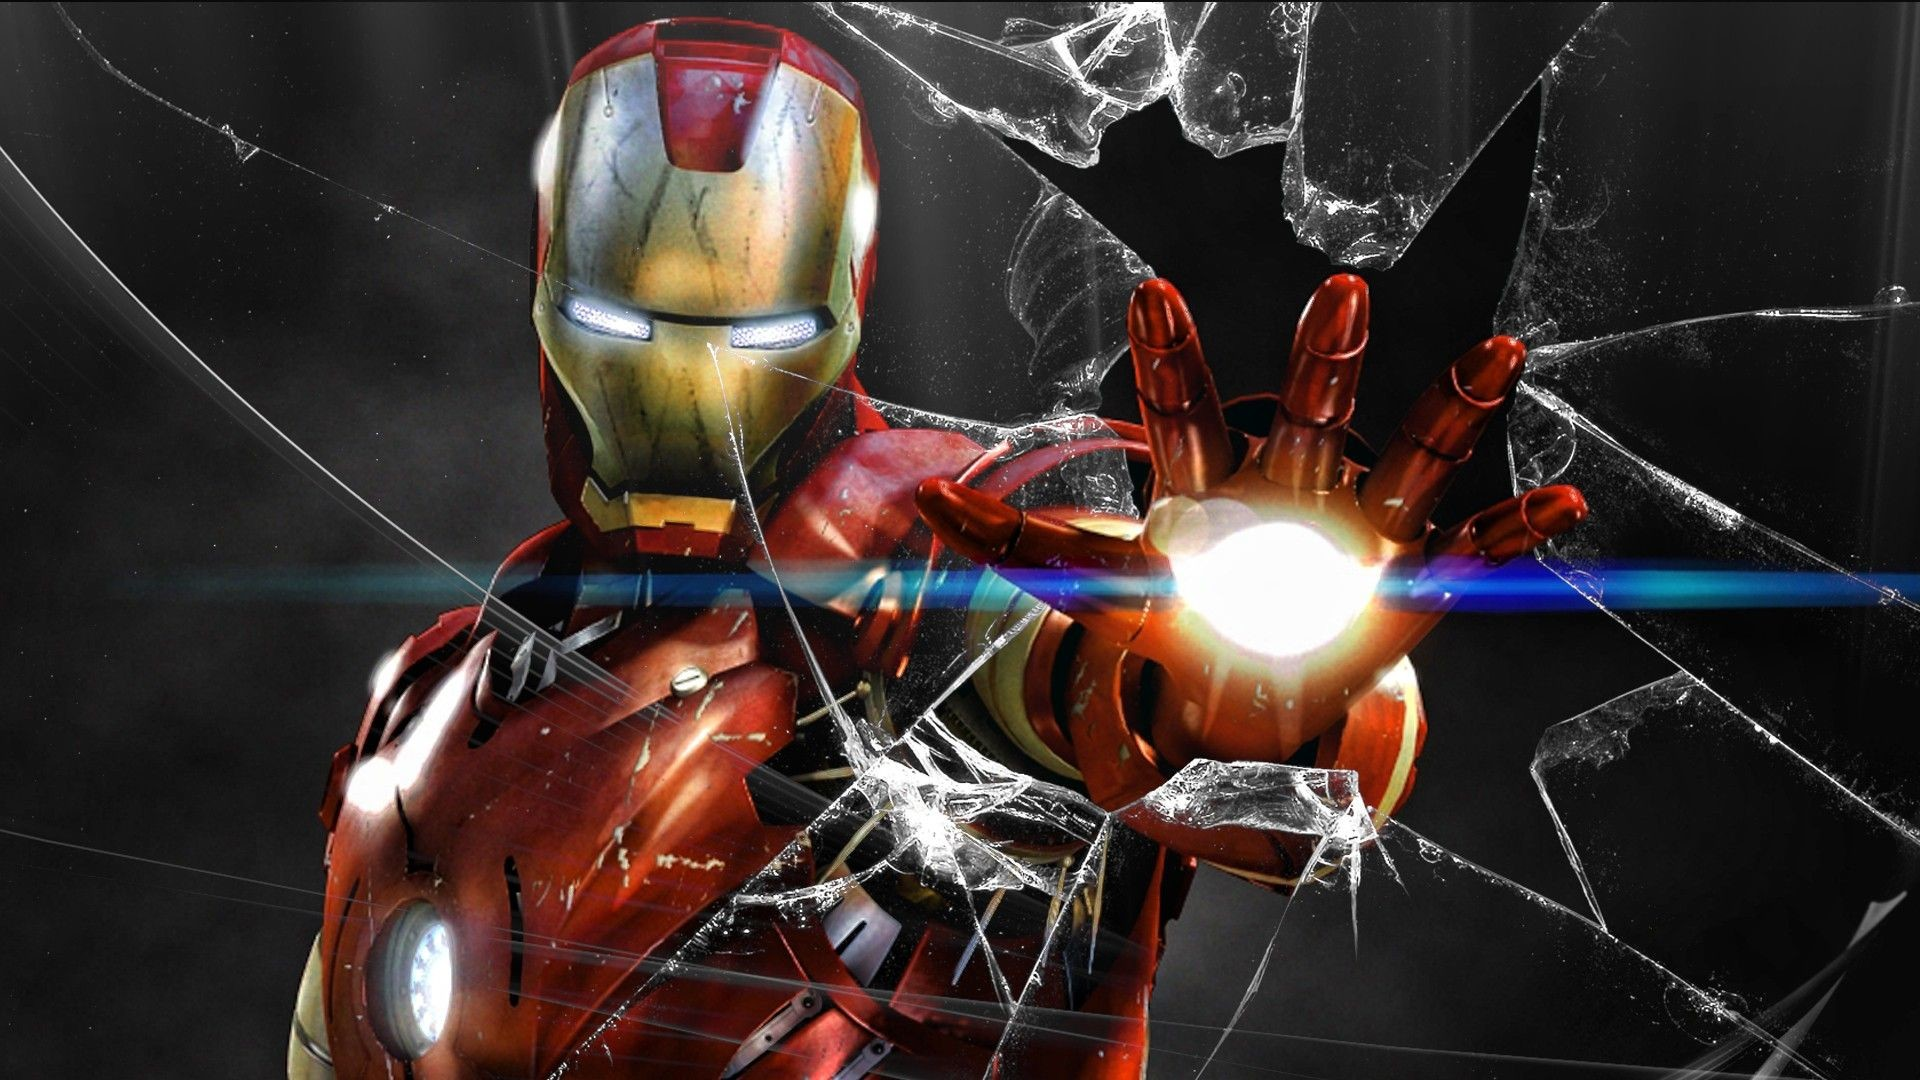 Res: 1920x1080, Iron Man Broken Screen Wallpaper - Best Wallpaper HD